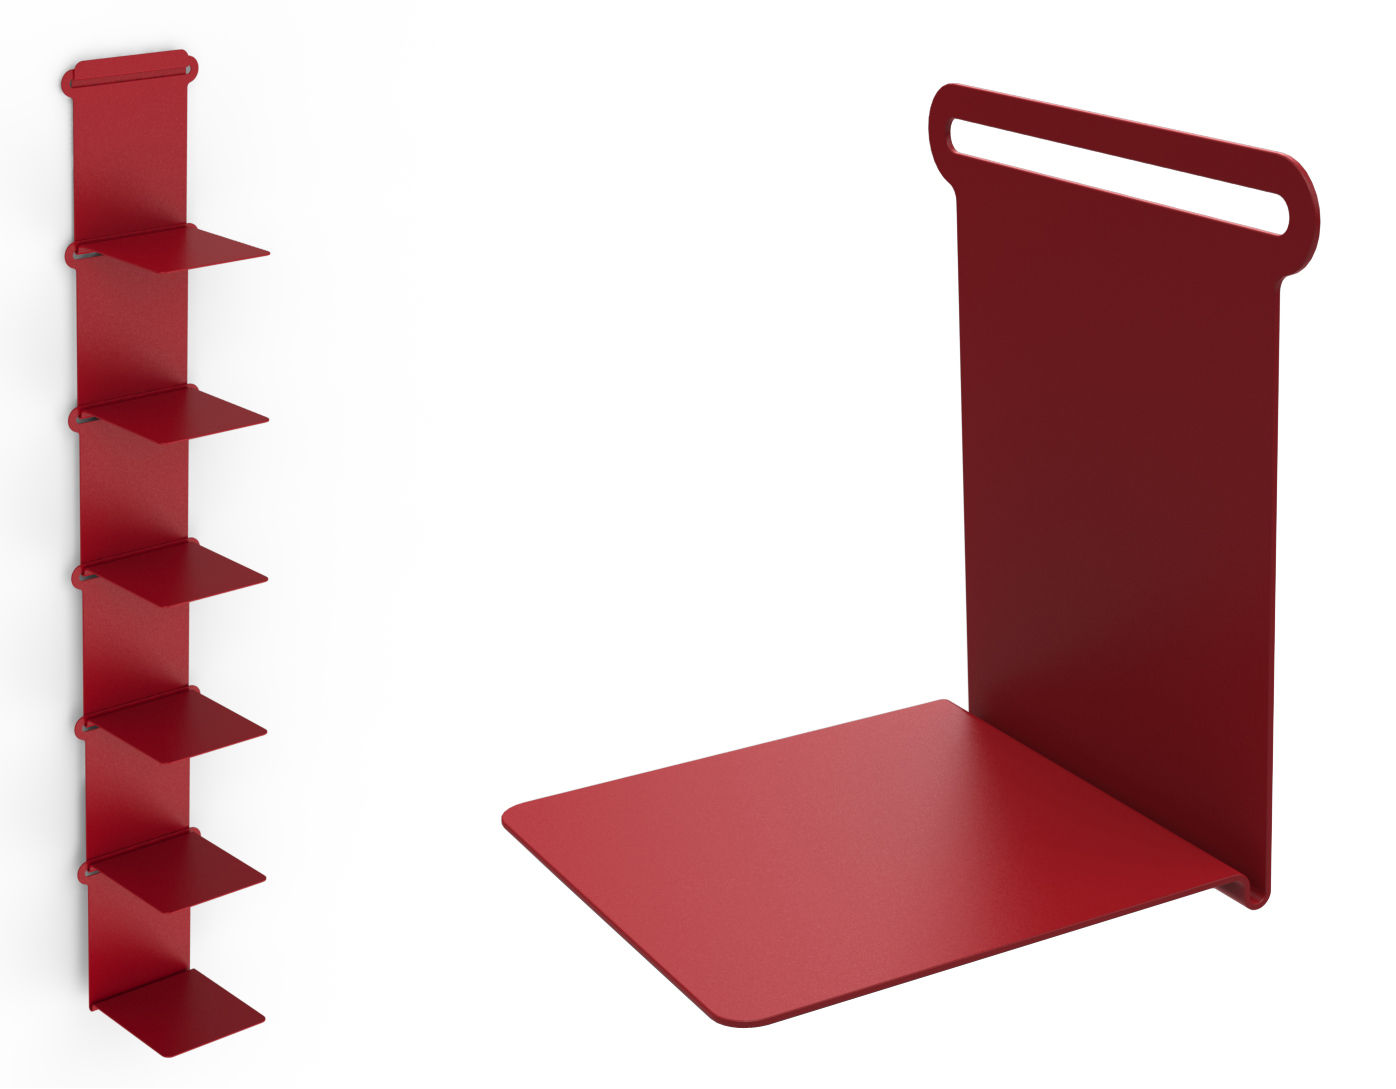 Furniture - Bookcases & Bookshelves - Knick Shelf by Matière Grise - Red - Metal